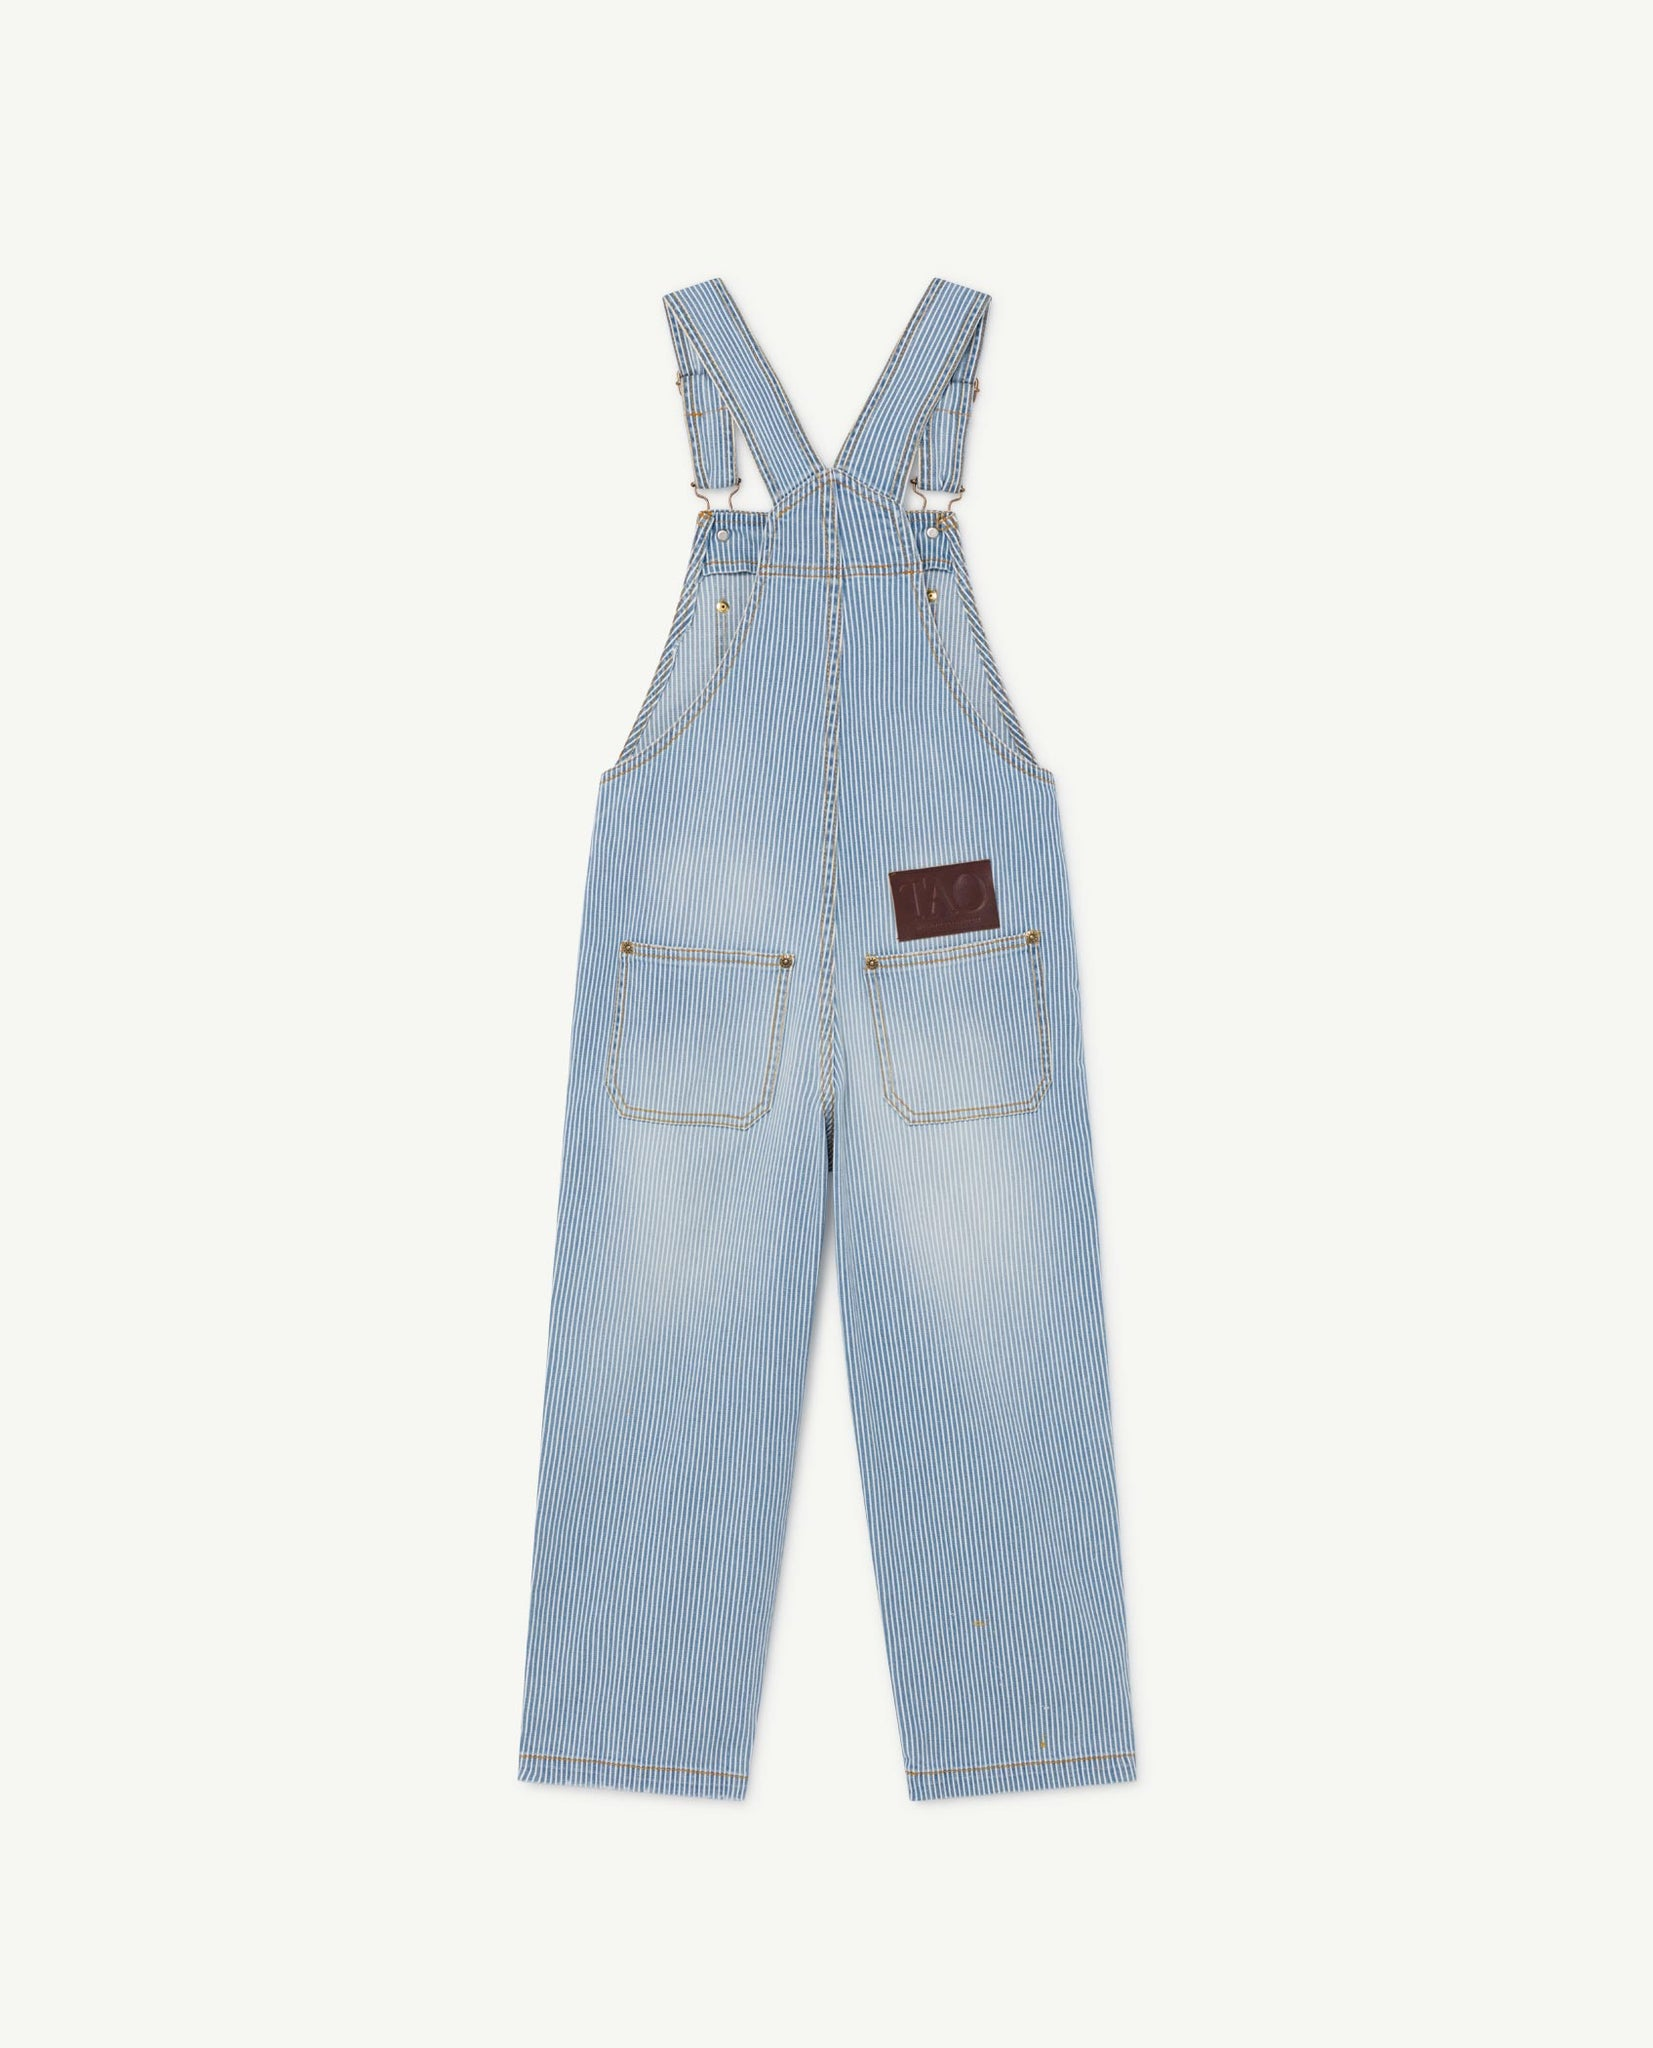 Stripes Mule Kids Dungaree - Indigo Sun